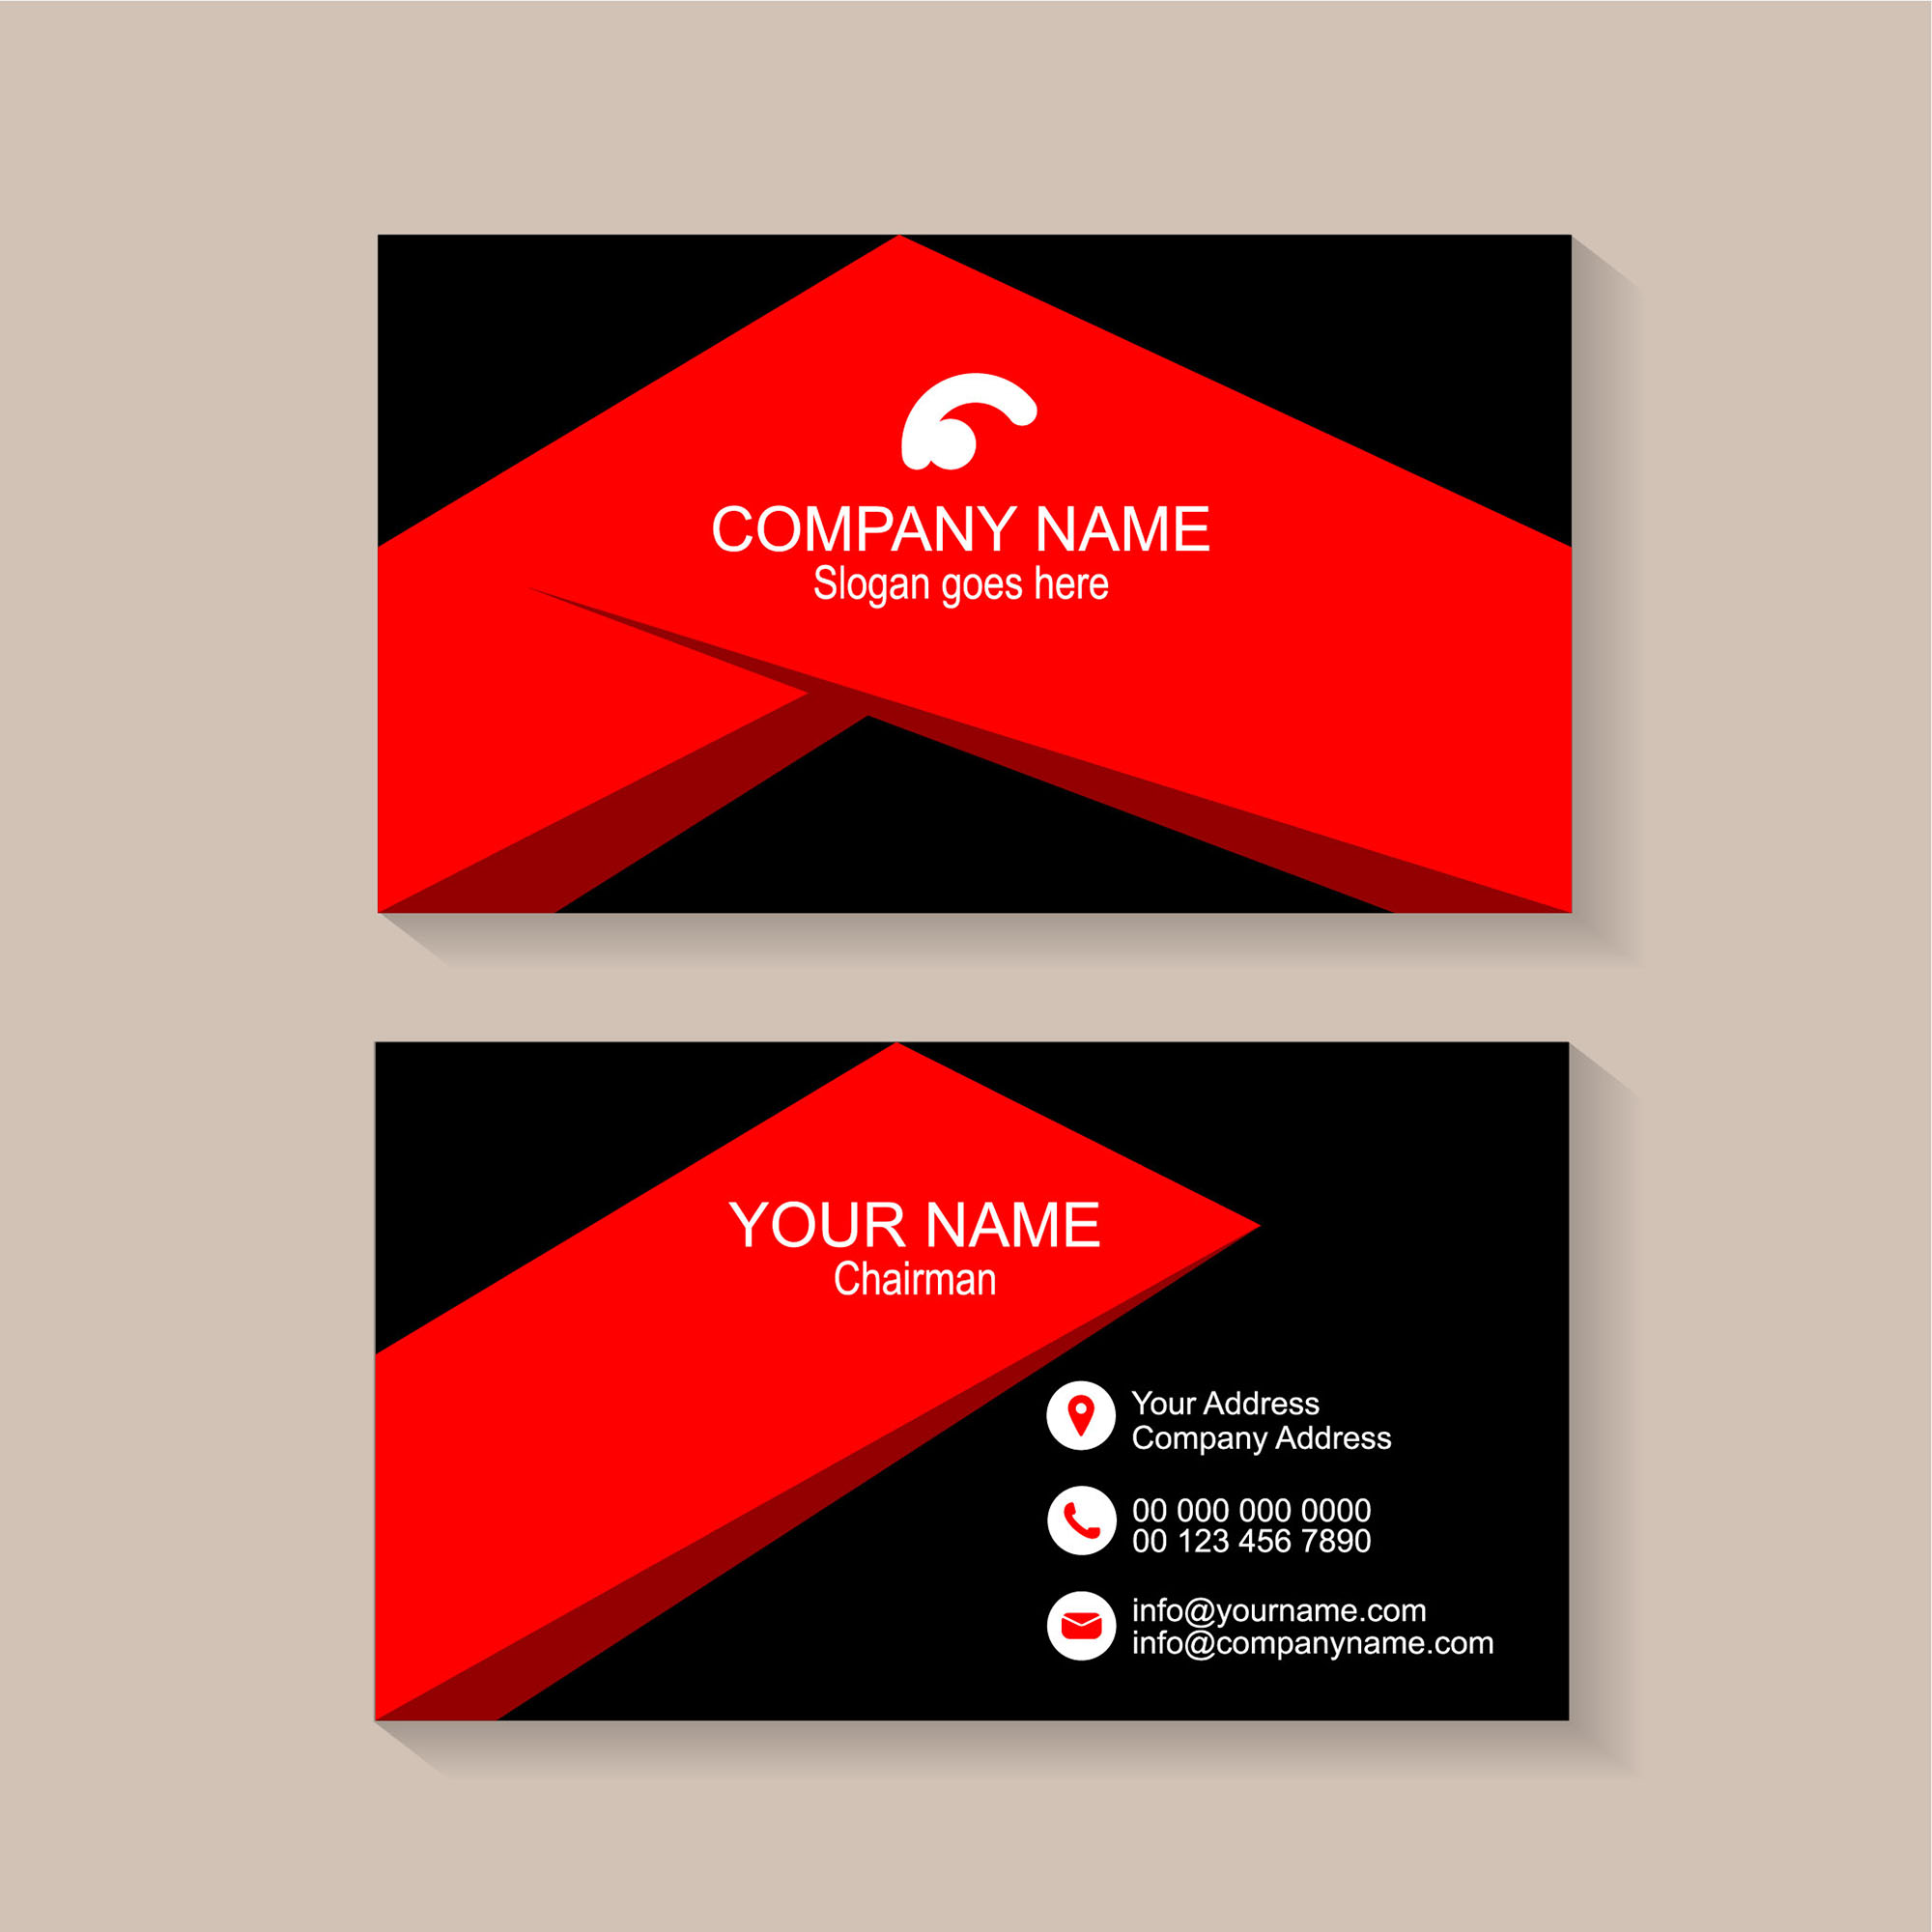 Business card template design free download wisxi business card business cards business card design business card template design templates wajeb Images